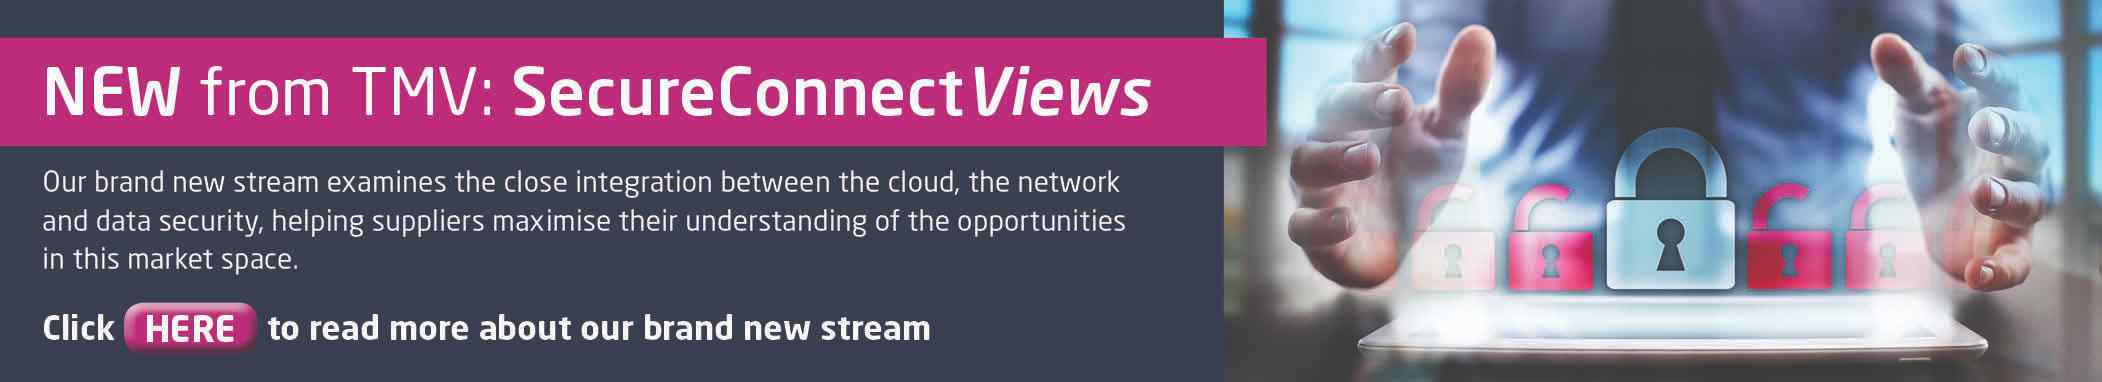 Introducing Secure Connect Views a new stream to TechMarketView